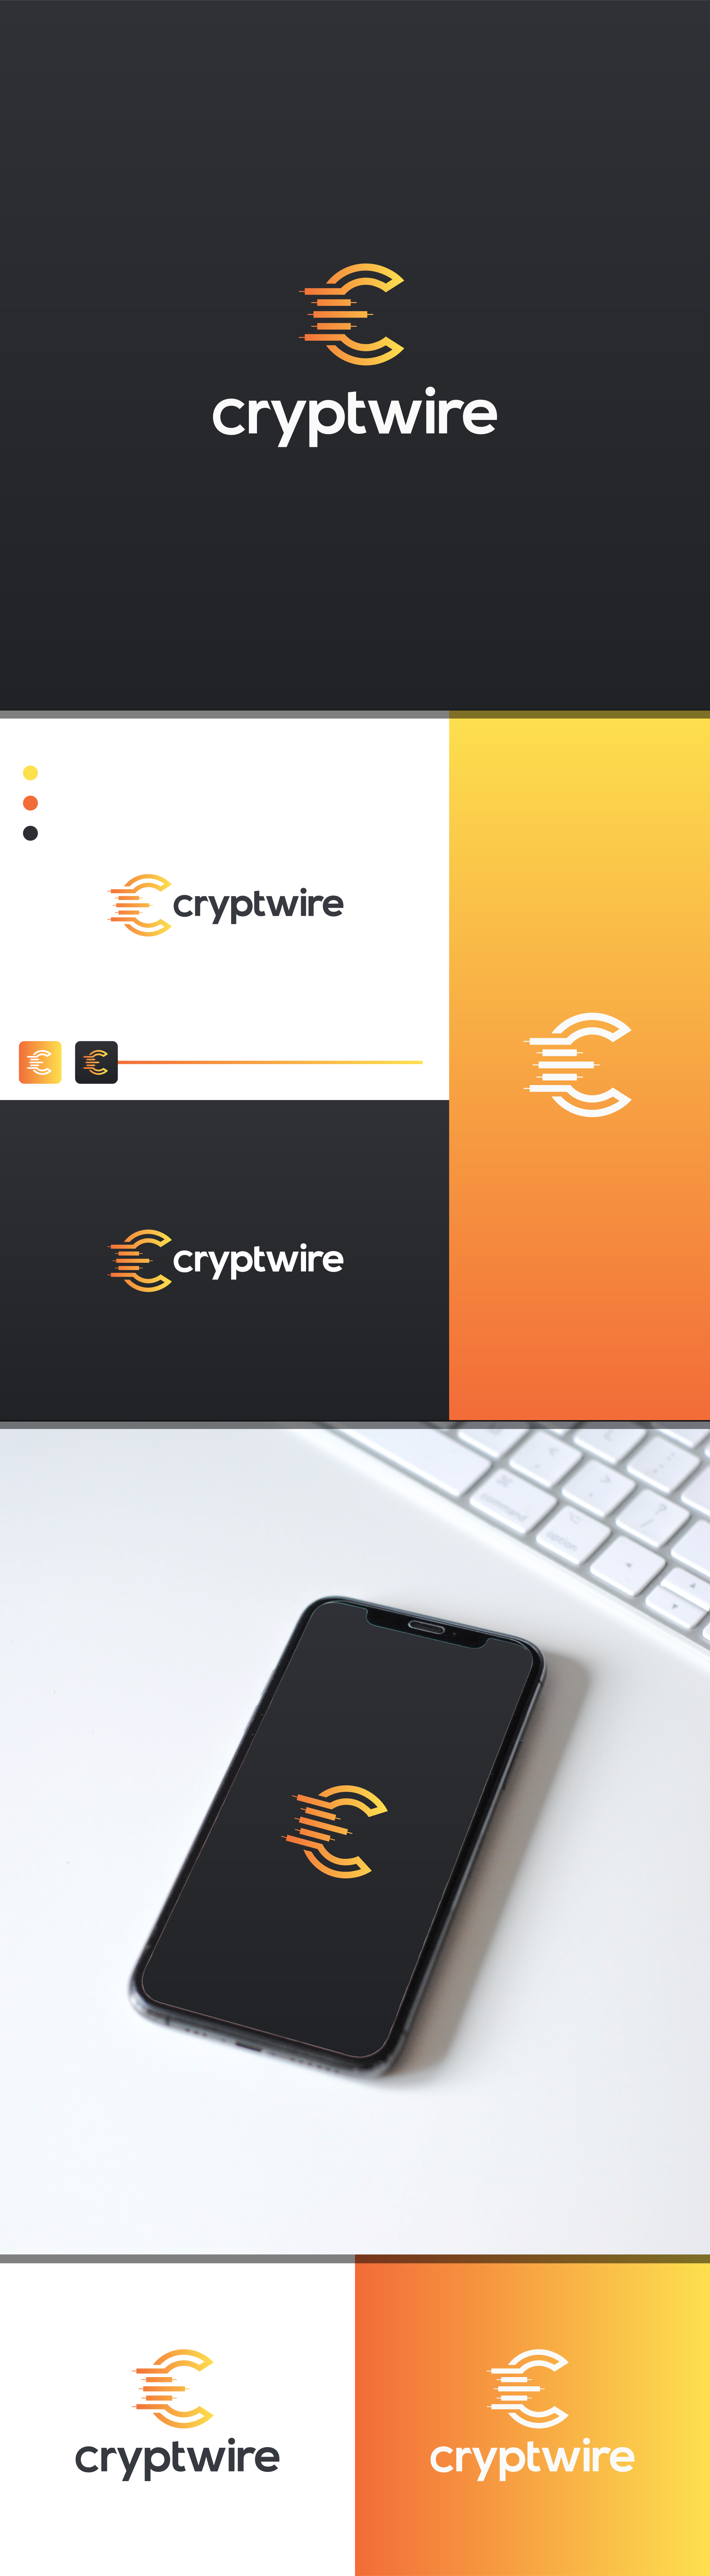 Energetic logo for a cryptocurrency trading analysis platform